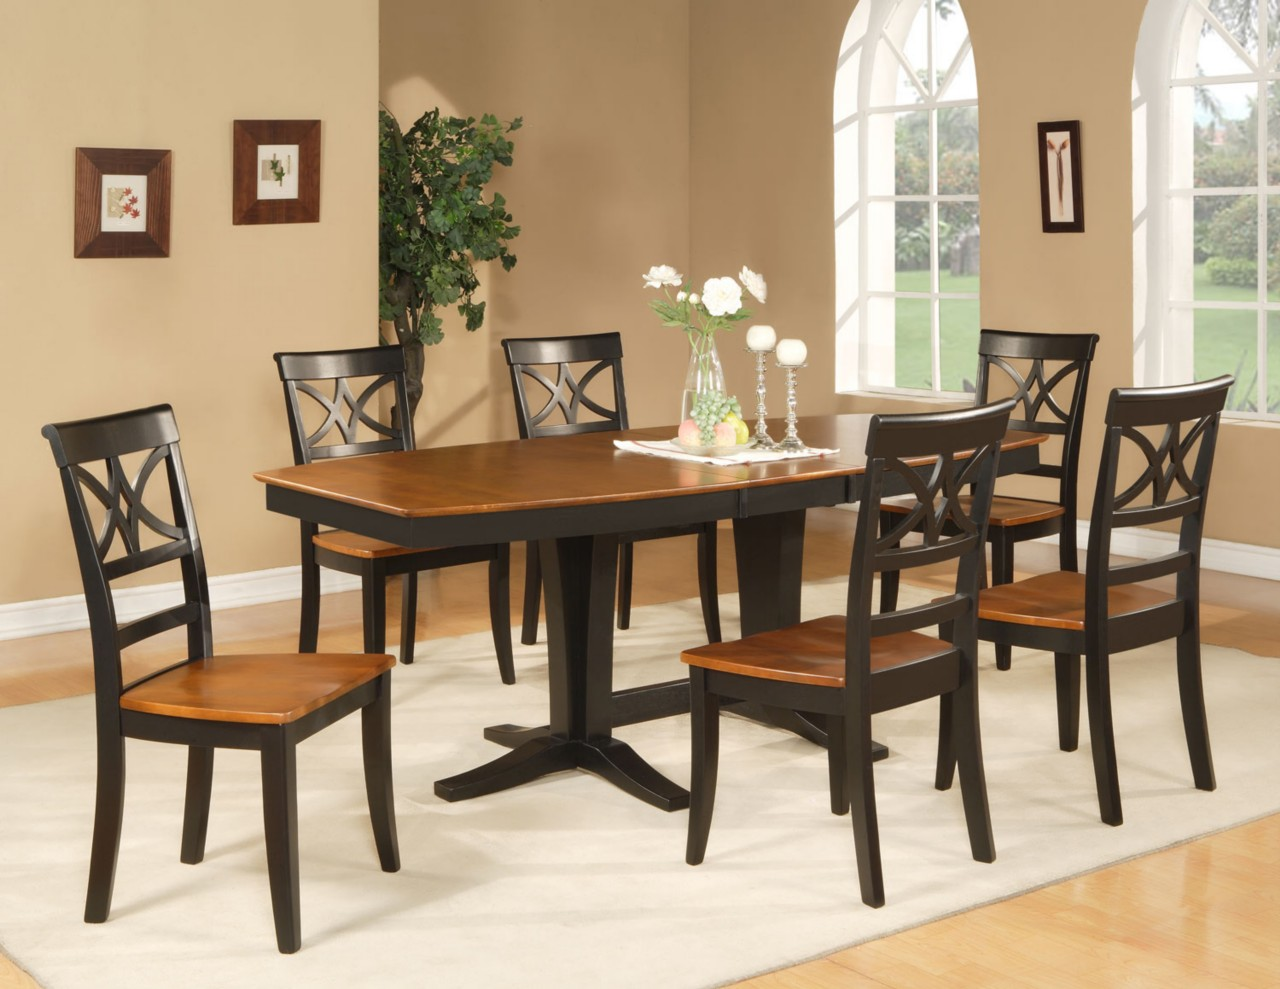 Setting Dining Room Table: At The Galleria